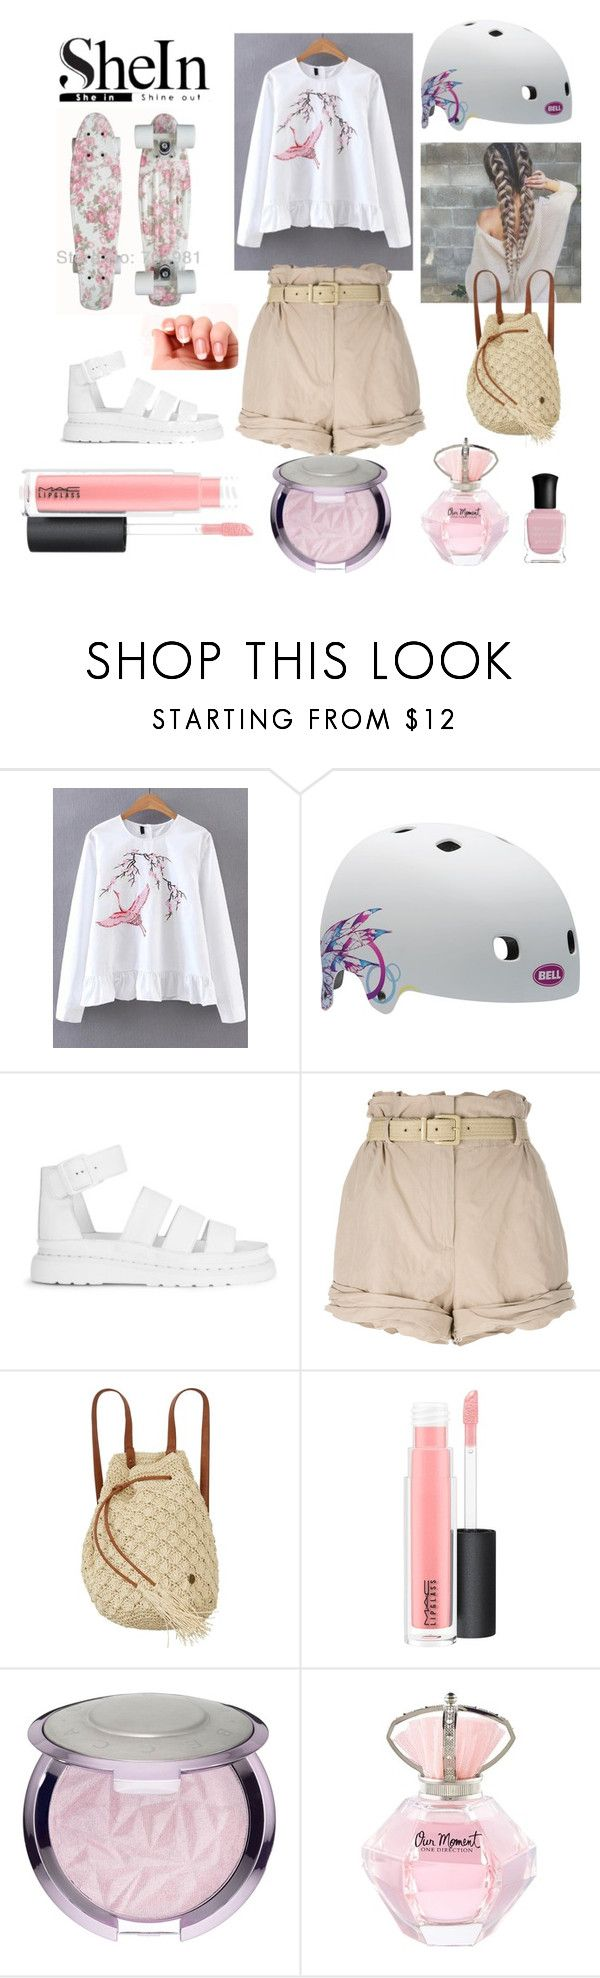 """прекрасная скейтбордистка"" by huohu ❤ liked on Polyvore featuring WithChic, Dr. Martens, Moschino, Billabong, MAC Cosmetics, Deborah Lippmann and skateboarding"